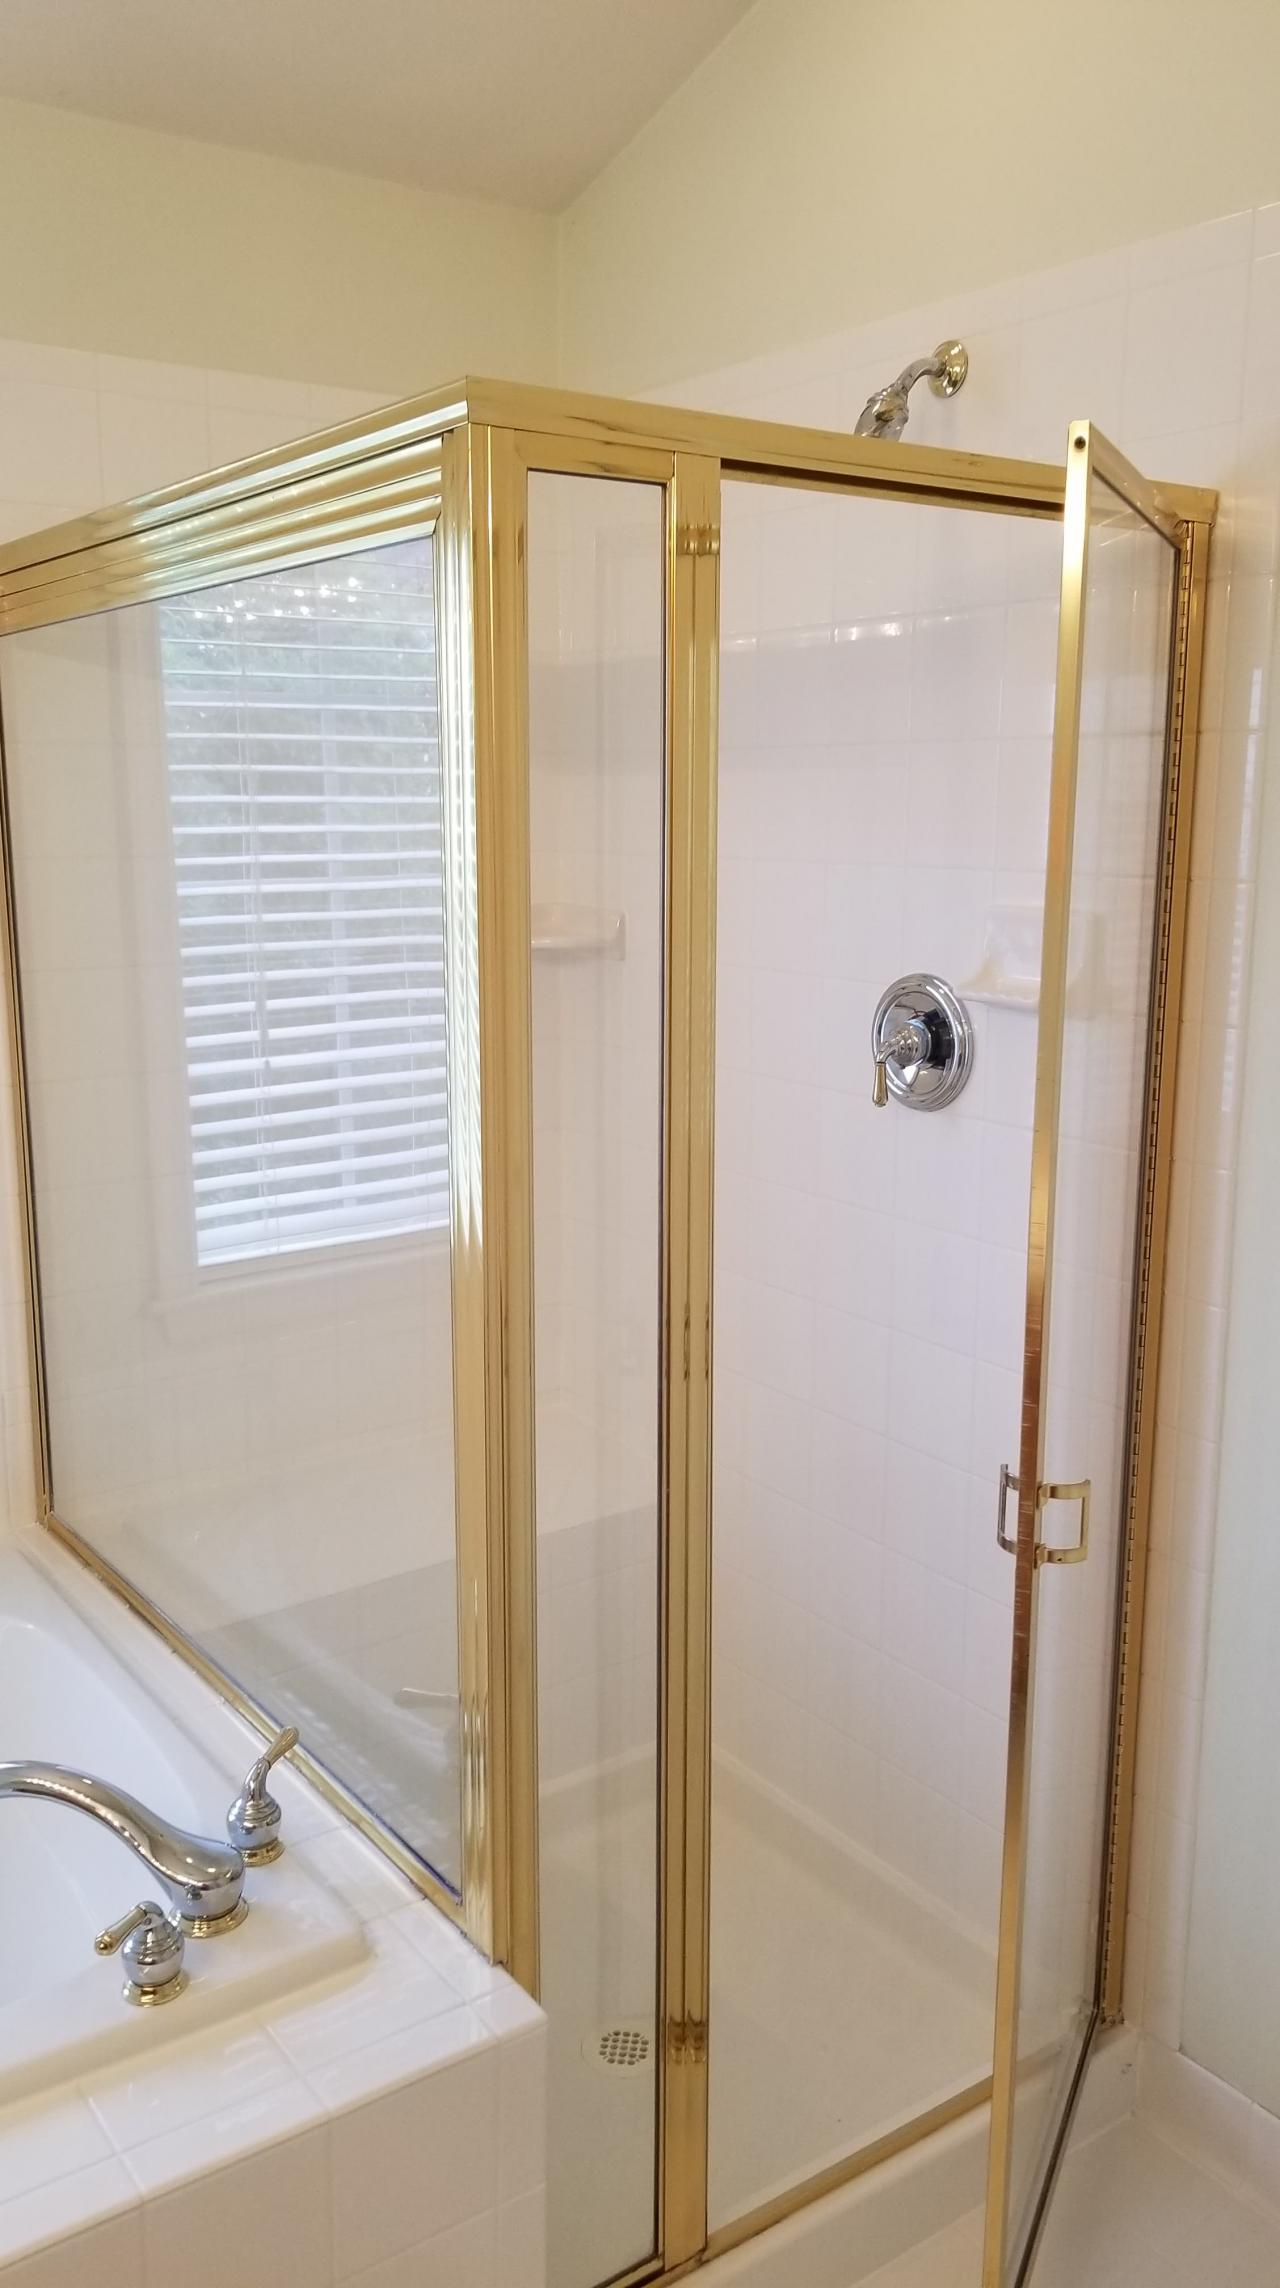 SEPERATE SHOWER & TUB